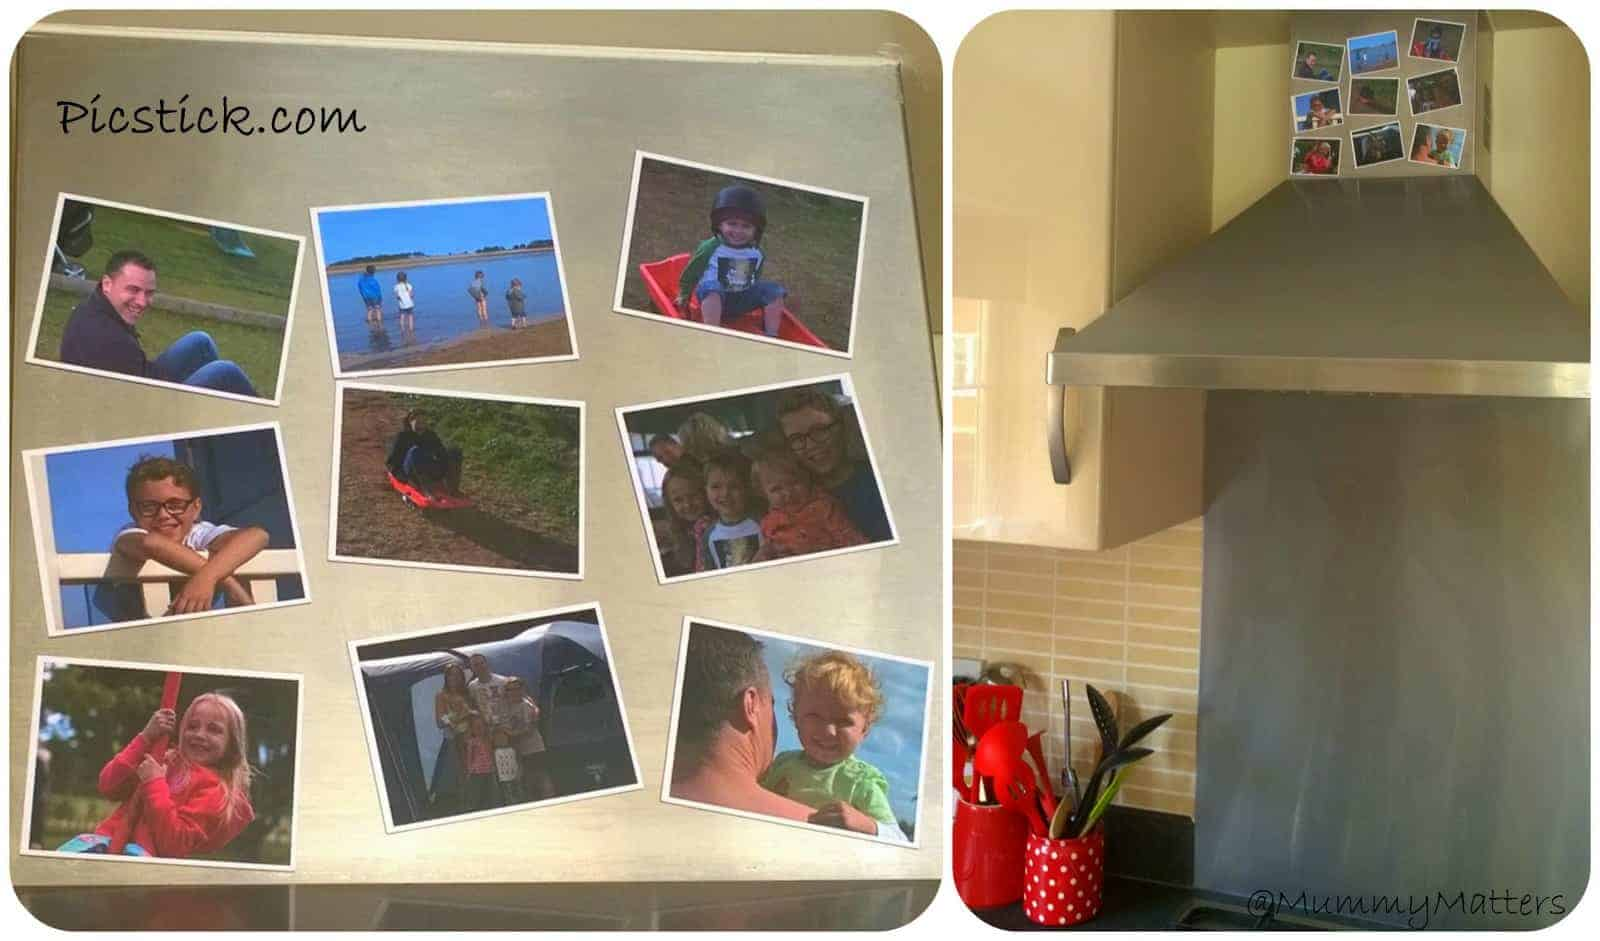 Picstick: Personalised Photo Magnets